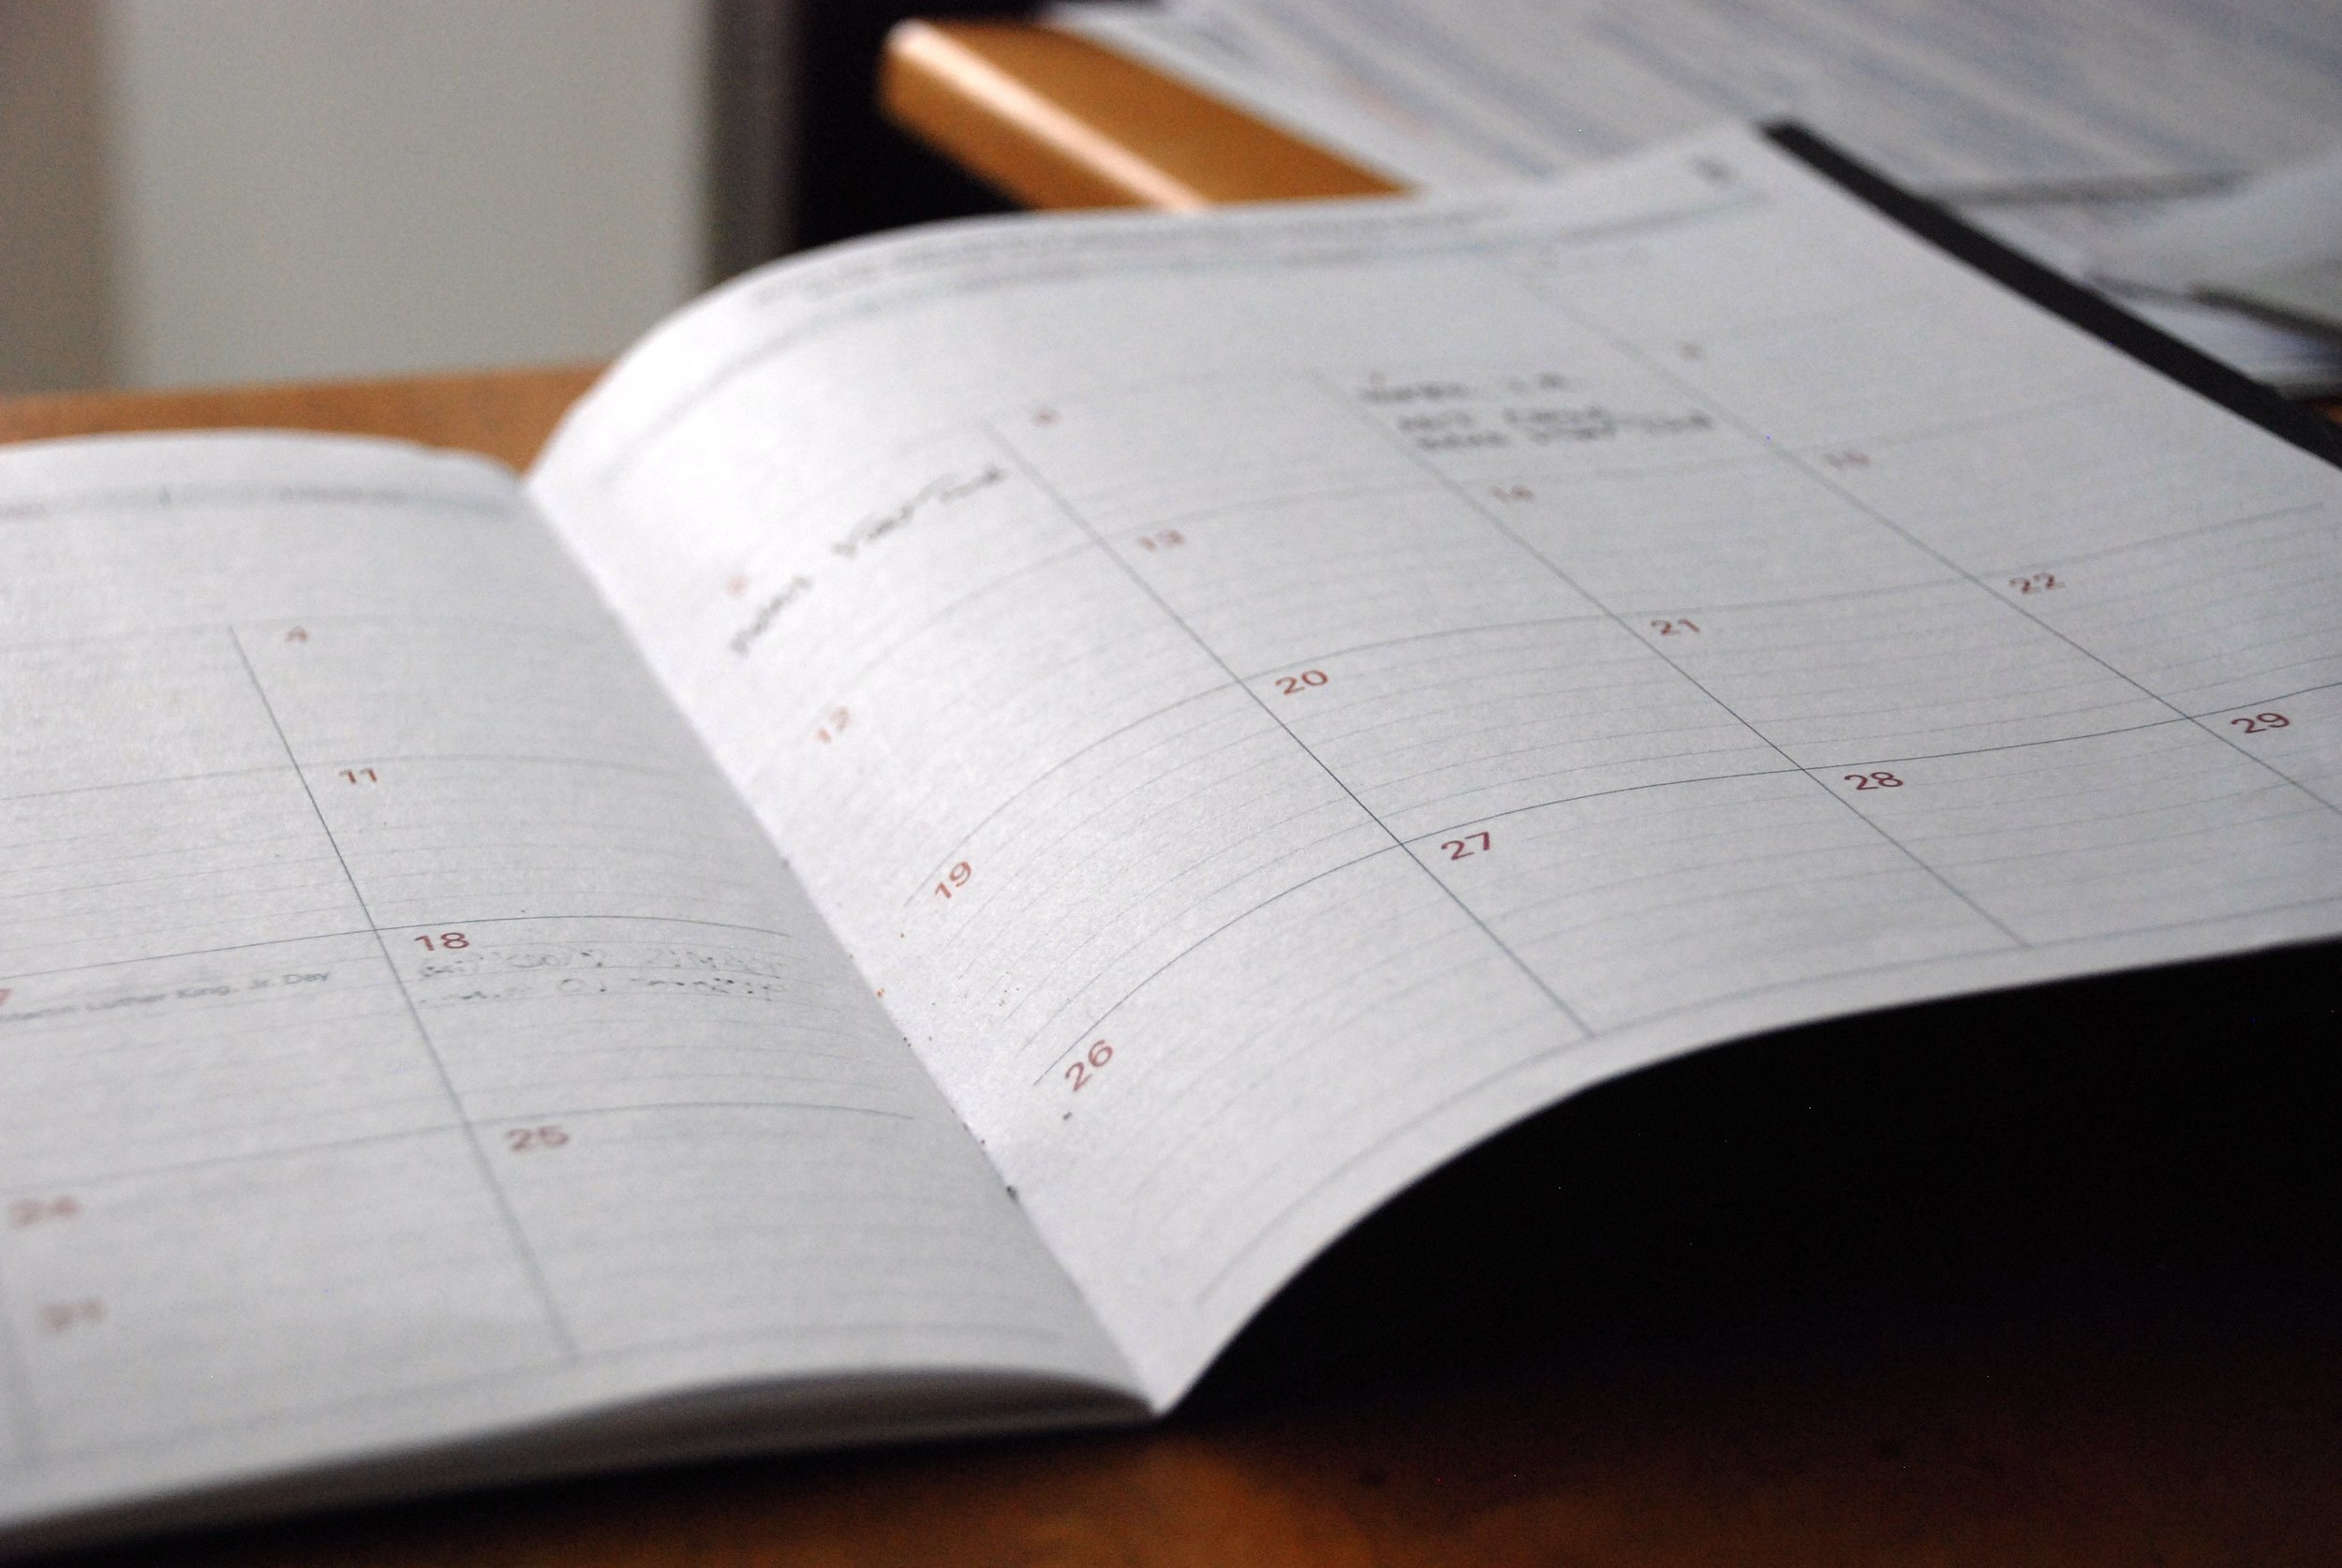 MEMBERS - View our church calendar, bulletins, and contact information for our members, leaders and committees.